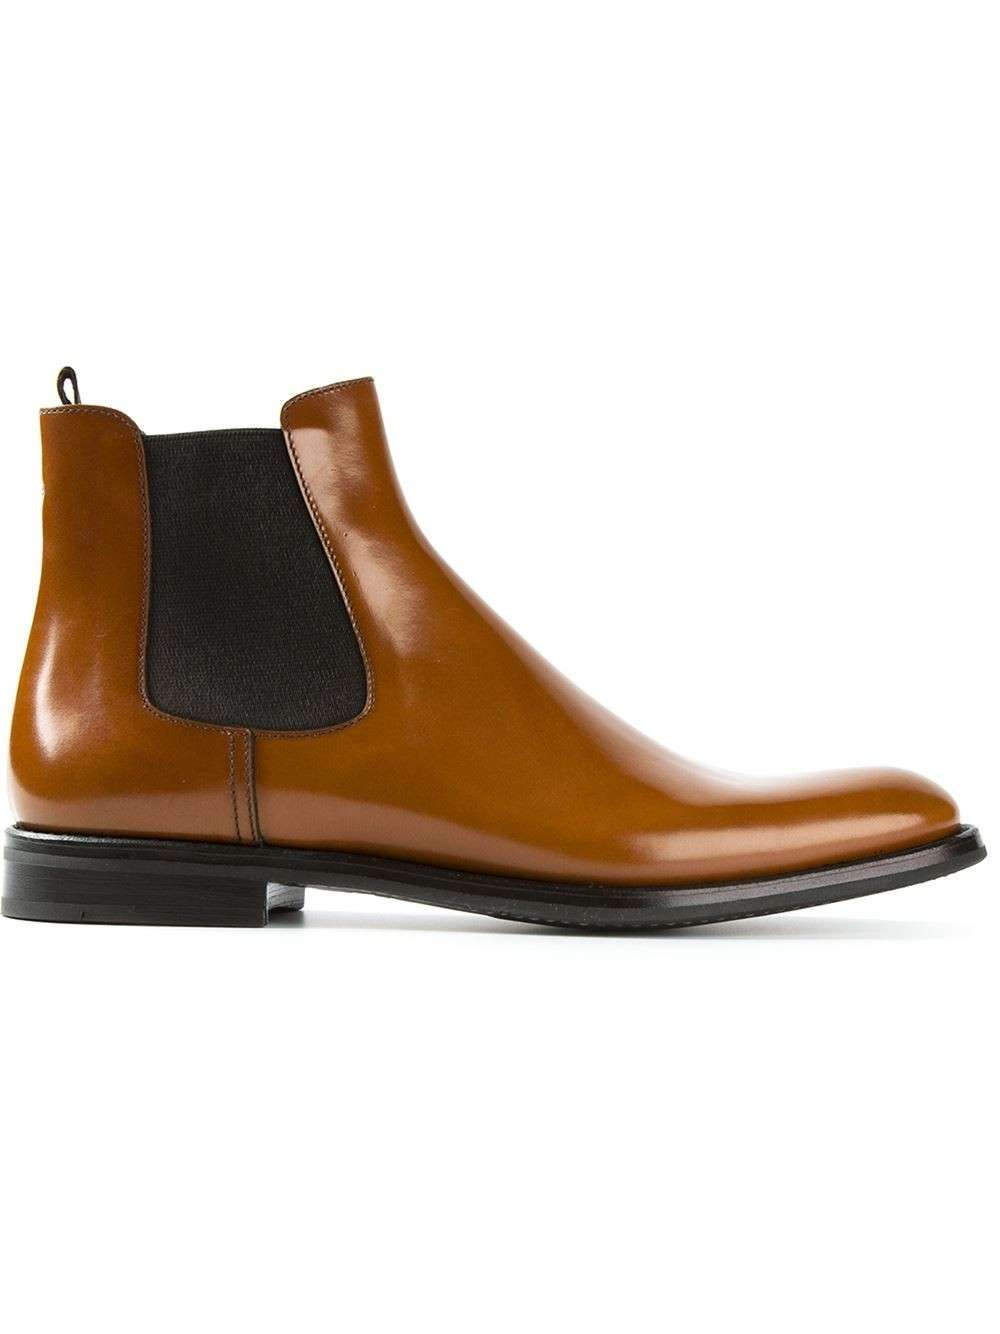 Chelsea boots caramello